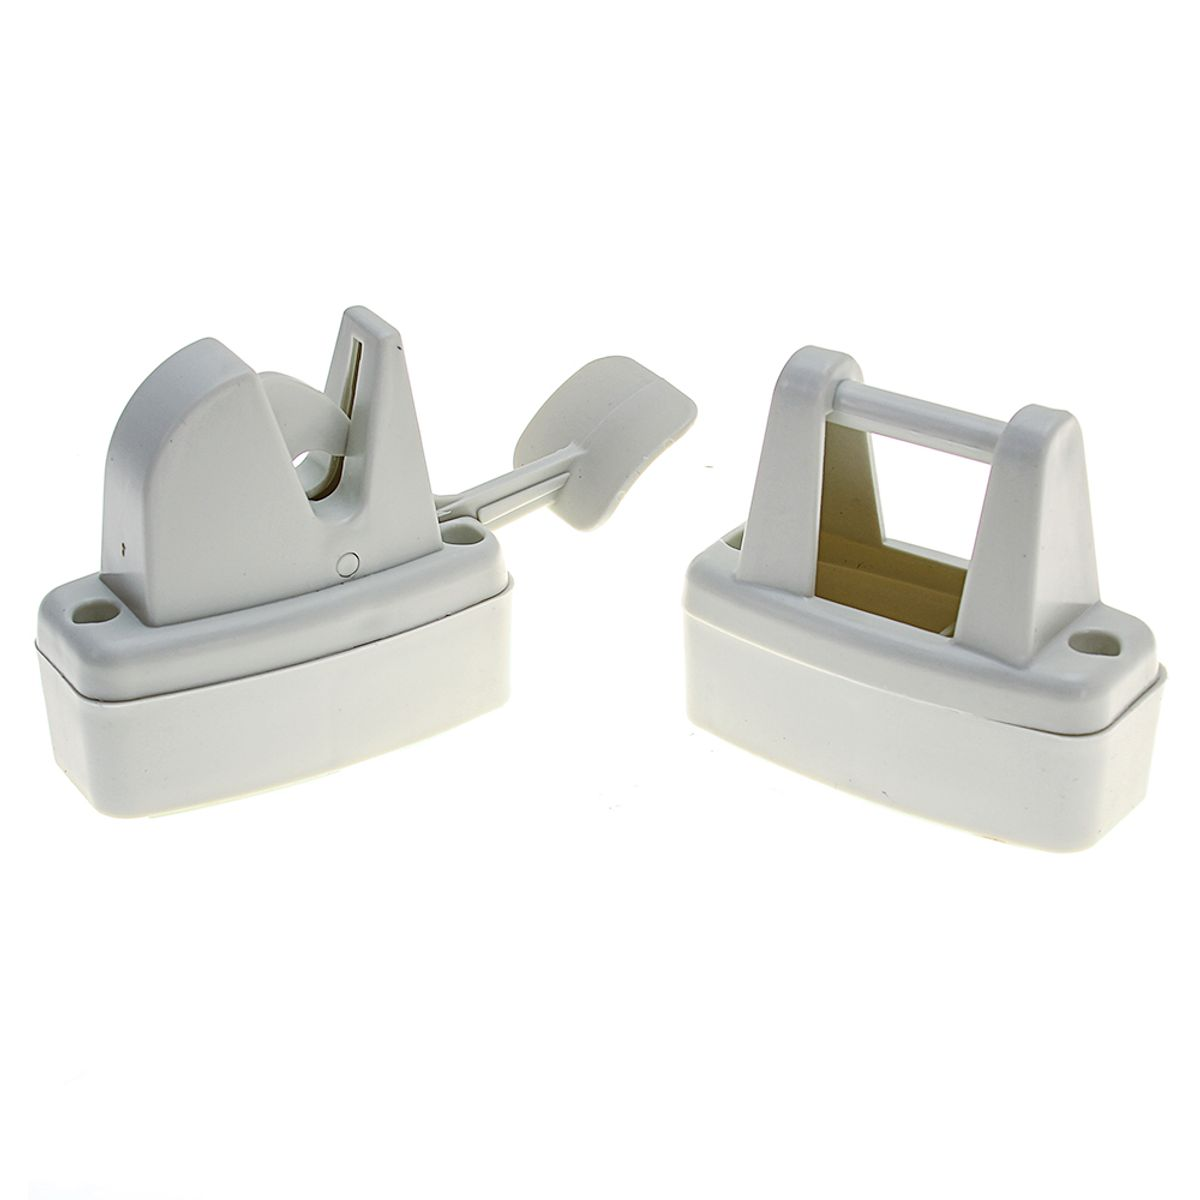 Lever Release Door Retainer Off White